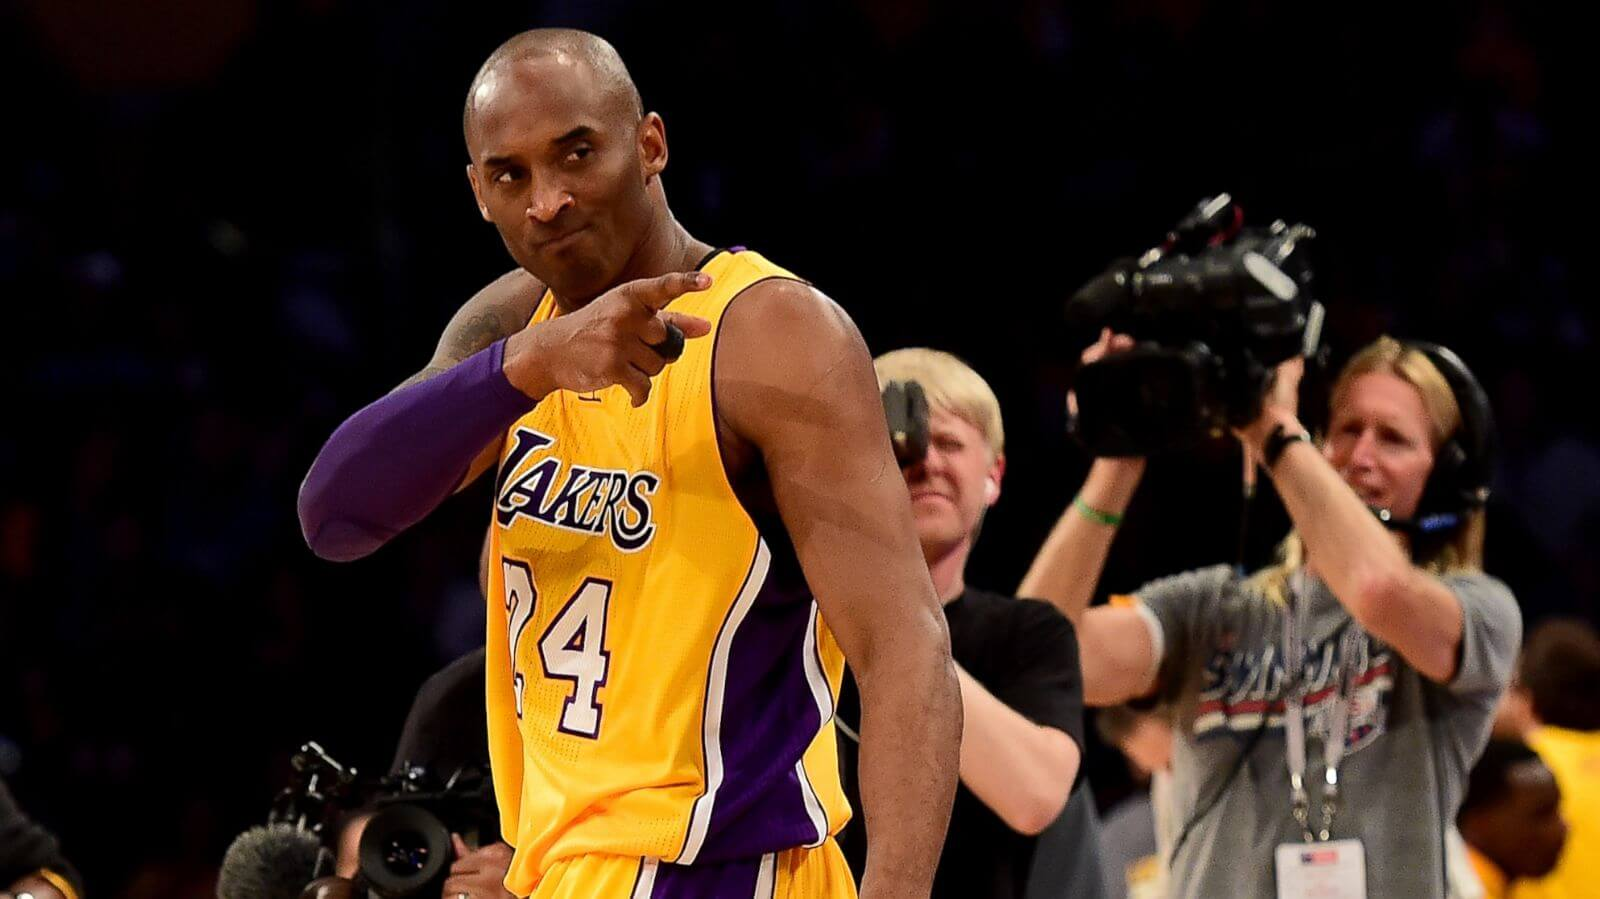 Kobe Bryant will be honored alongside others at the event/Photo Credit: Getty Images